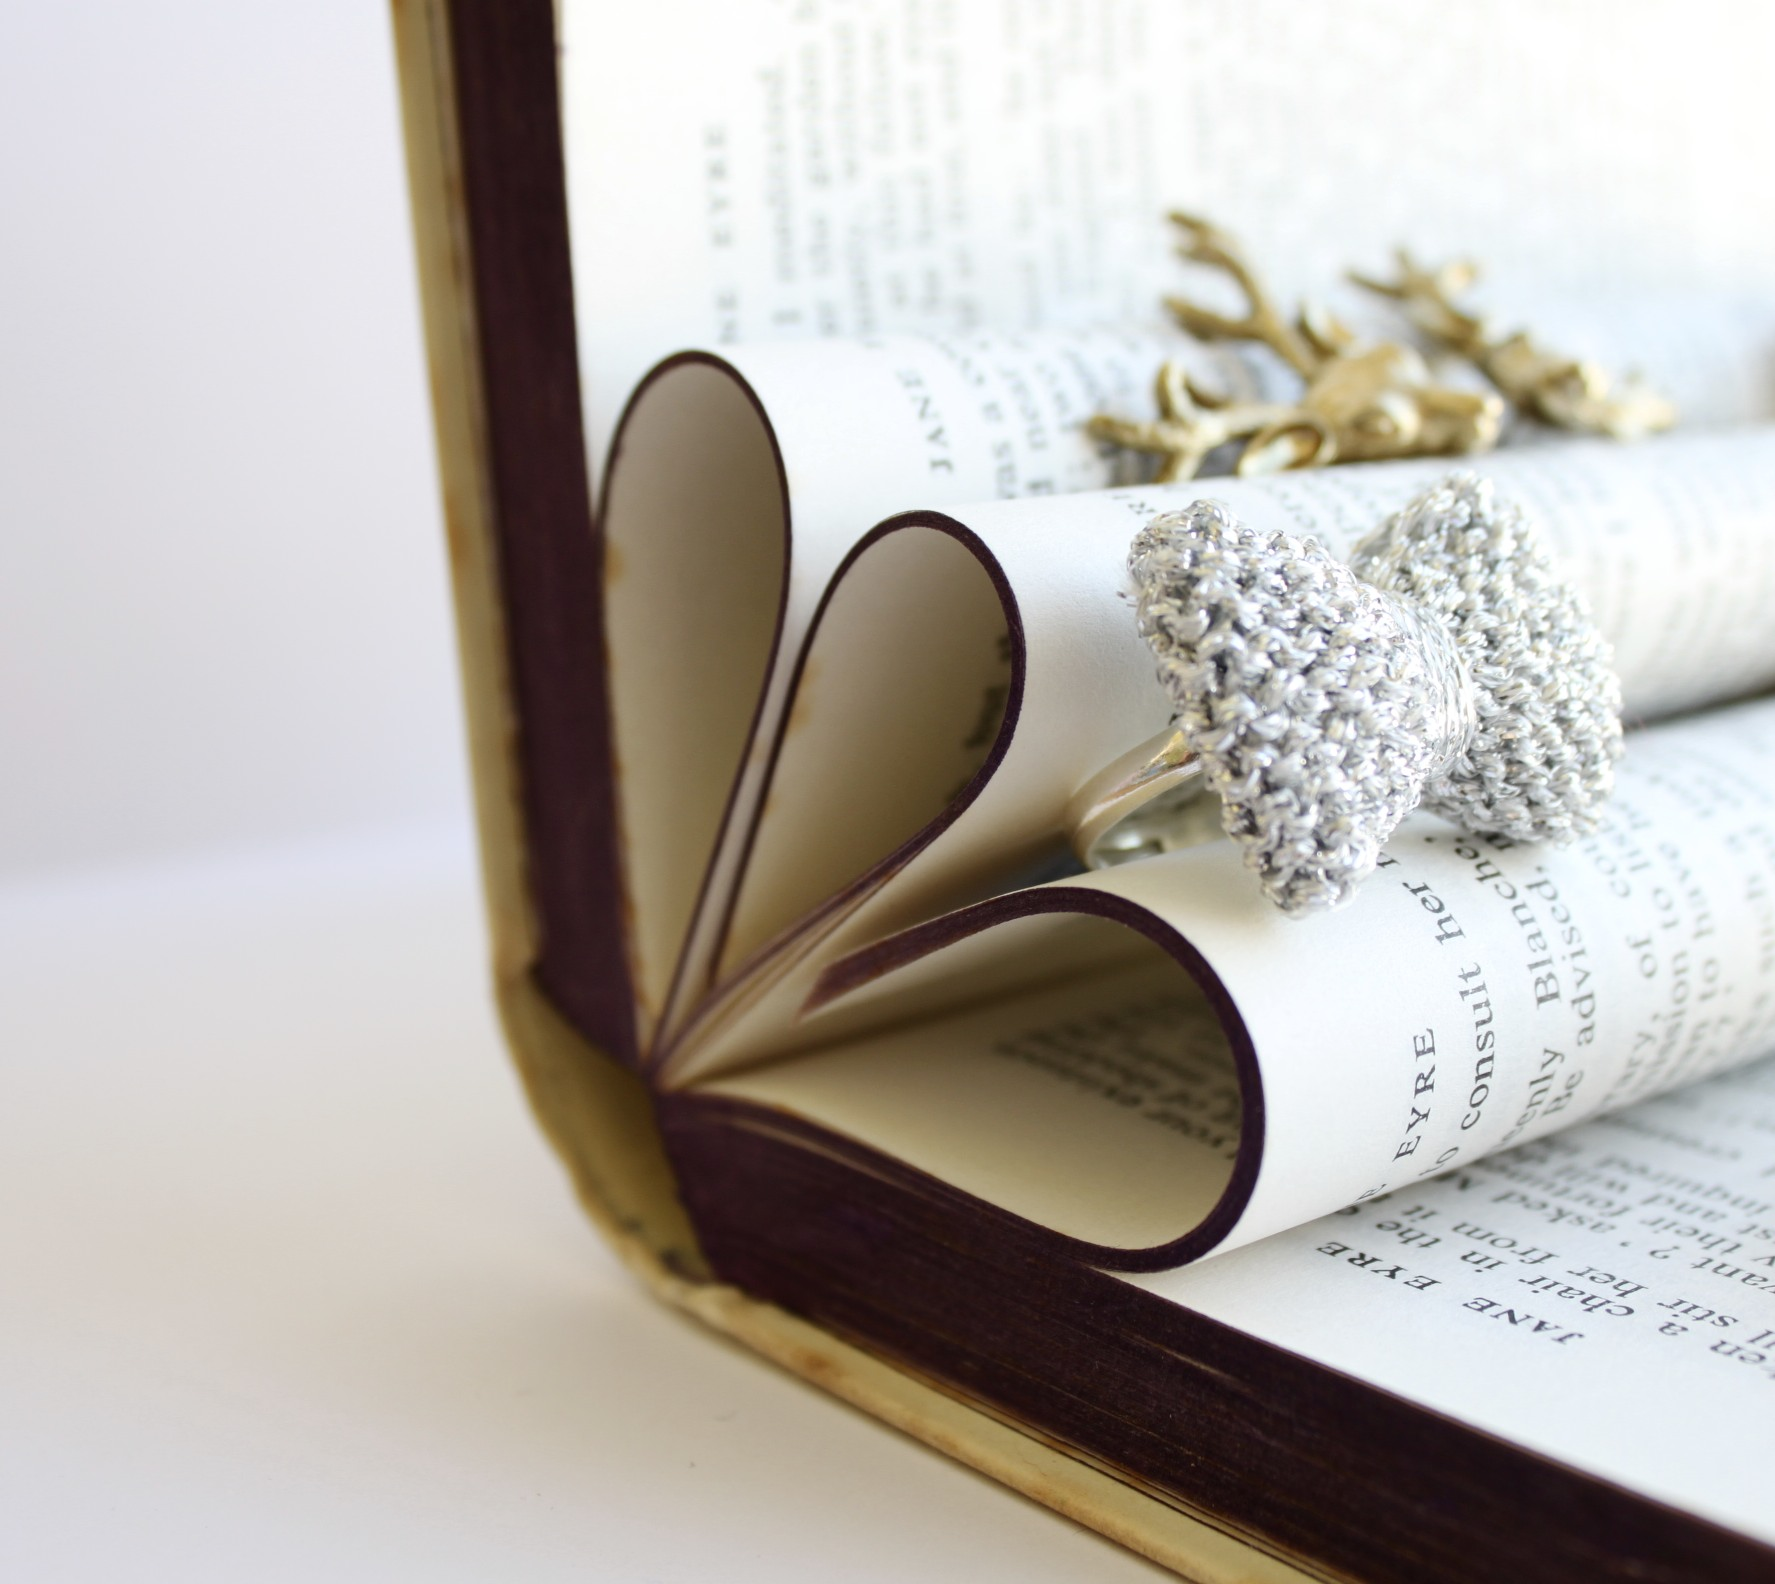 Jewelry display easy to make by bending multiple pages from a vintage looking book.